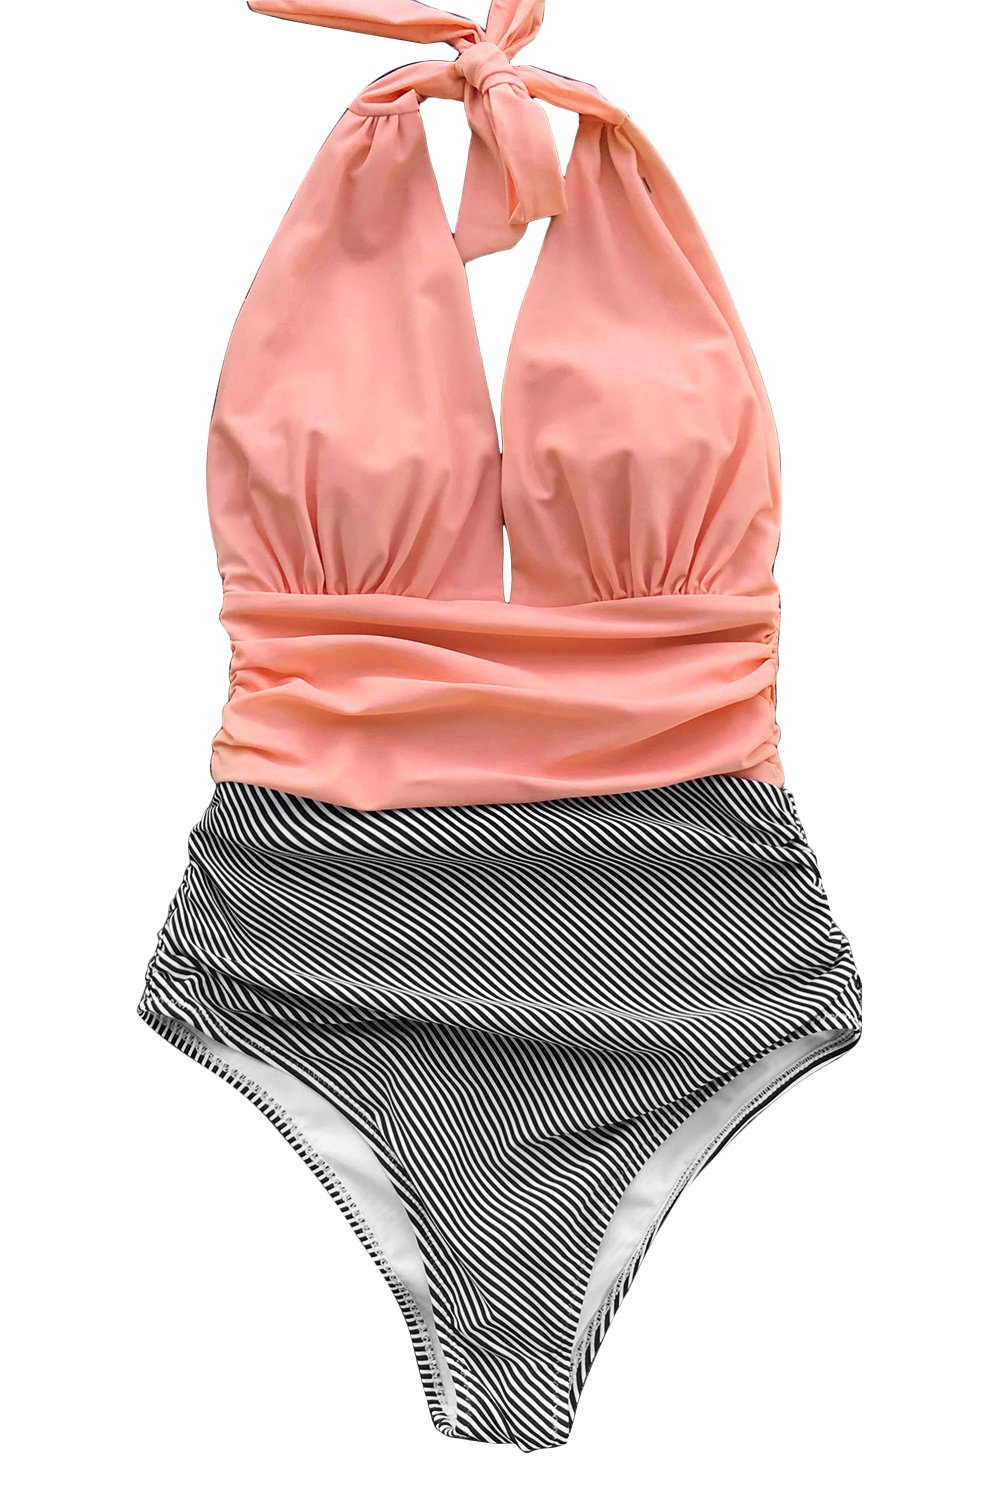 CUPSHE Women's Stripe Halter One-Piece Swimsuit Keeping You Accompained Swimwear, Large Pink by CUPSHE